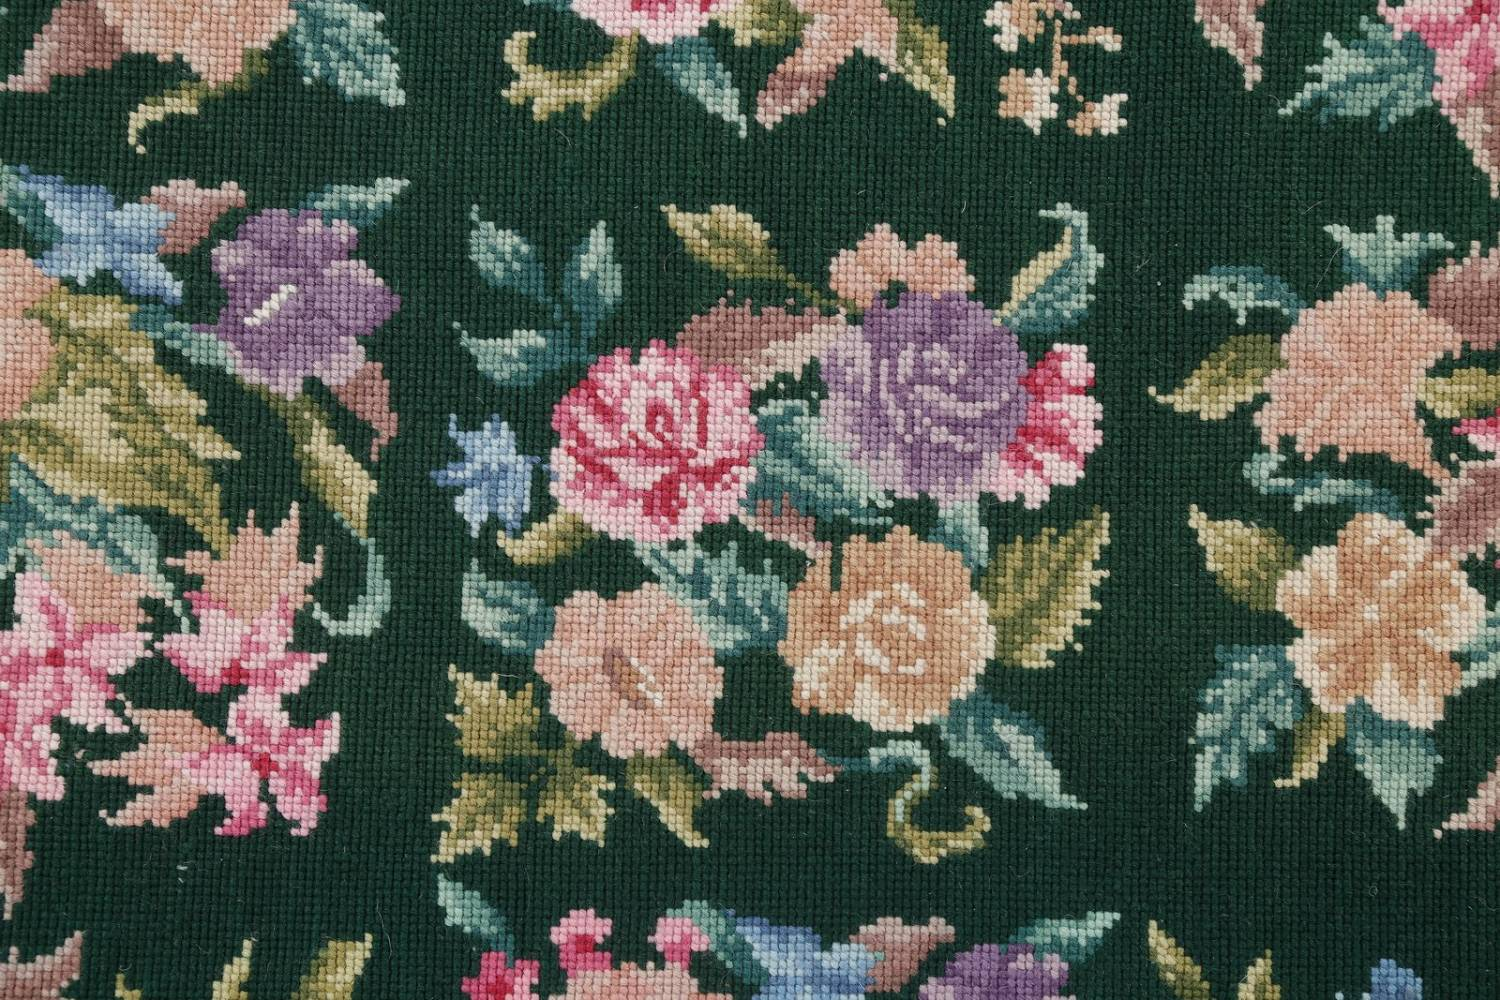 Hunter Green Floral Aubusson Needle-point Chinese Woven Area Rug Wool 6x9 image 7